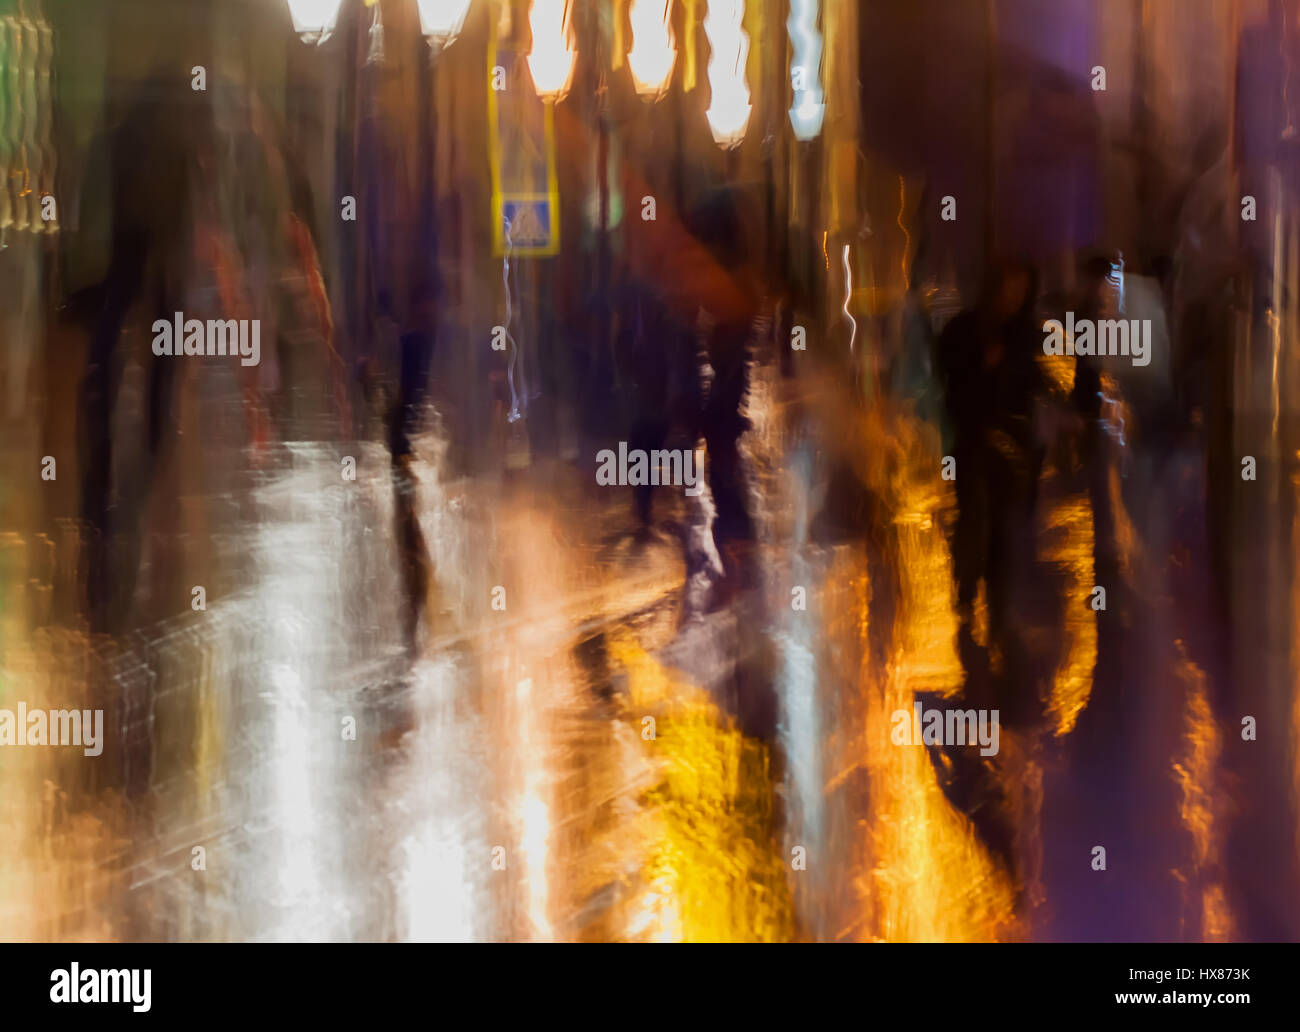 Abstract background of people figures, city street in rain, orange-brown tones. Intentional motion blur. Bright - Stock Image